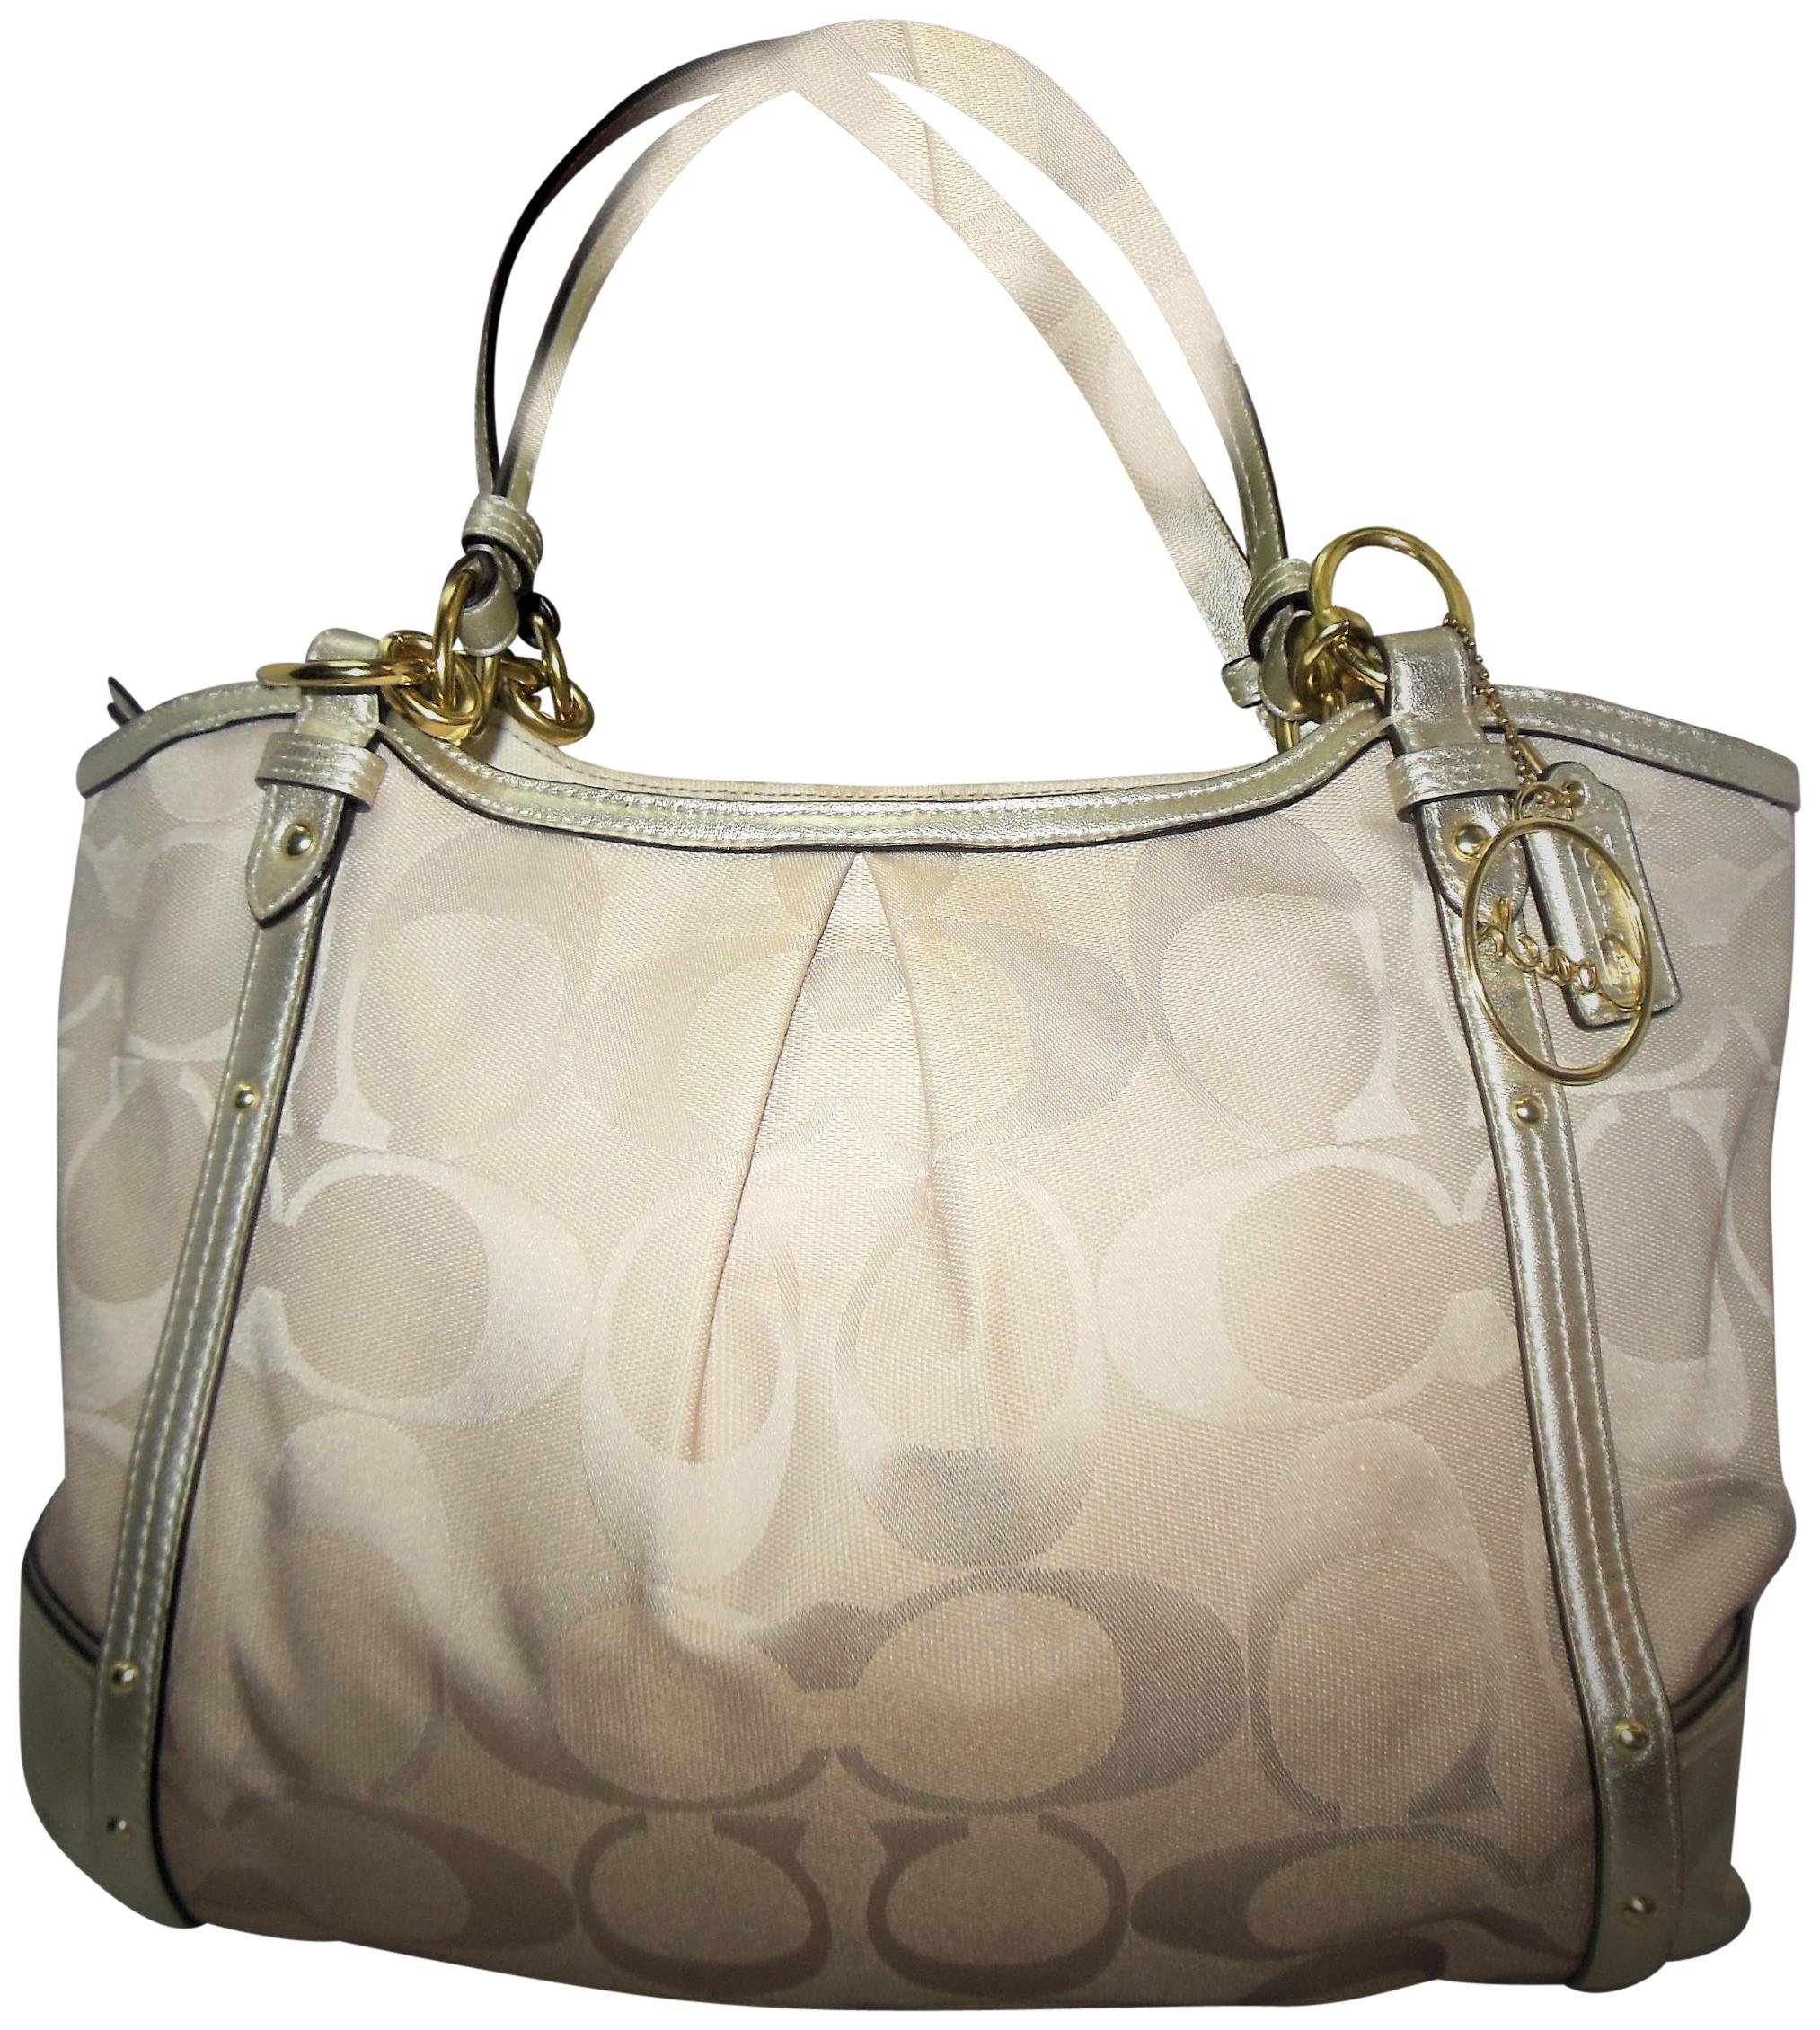 Ombre Coach Bag Swagger Wristlet In Pebble Leather Watermelon Alexandra Tote Cream Light Khaki Canvas Shoulder 860x960